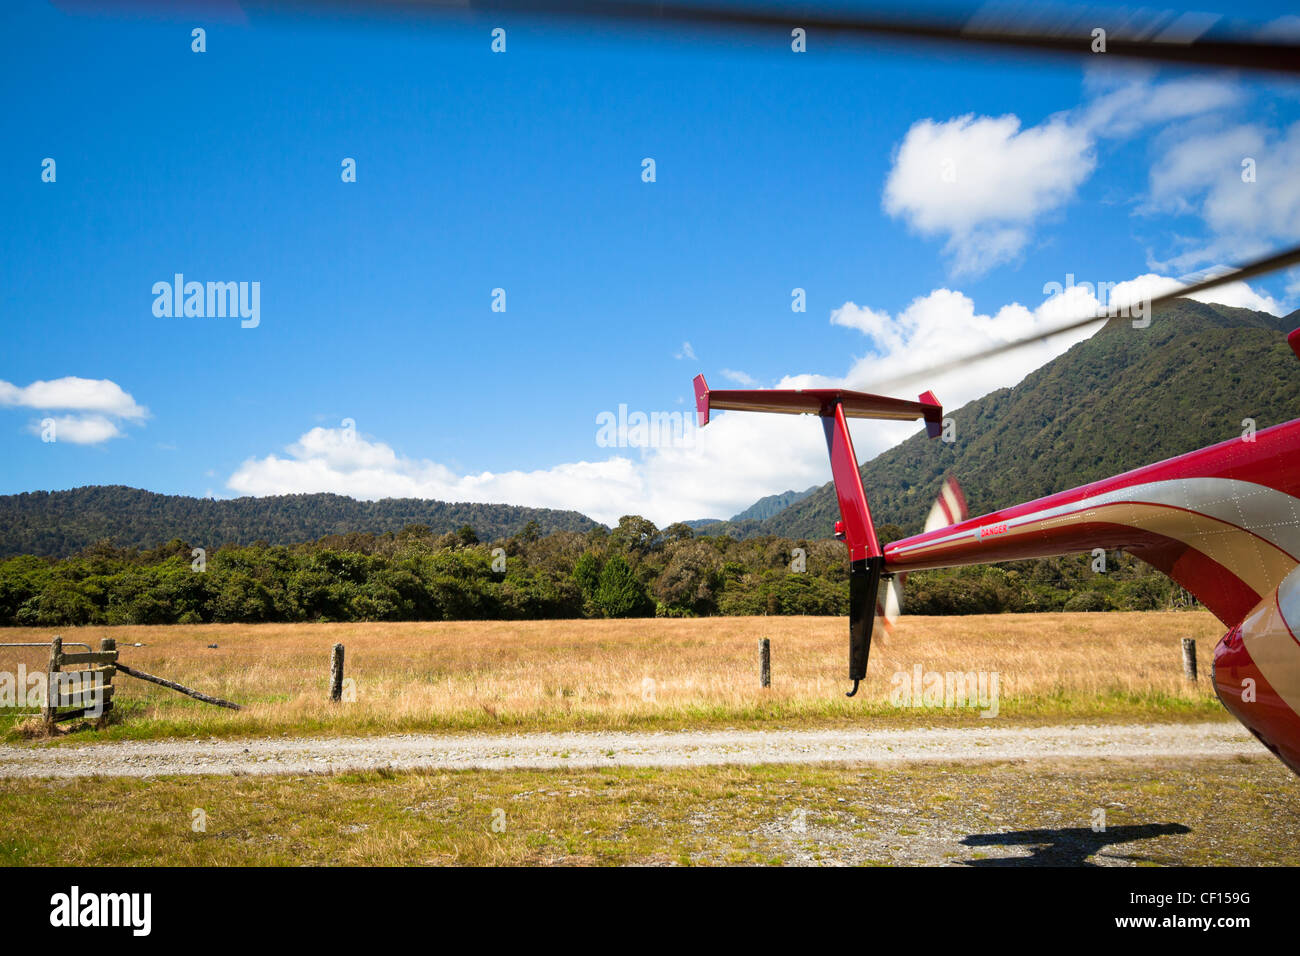 Detail of mountain helicopter and landscape in Fox Glacier, Southern Alps, South Island, New Zealand. - Stock Image